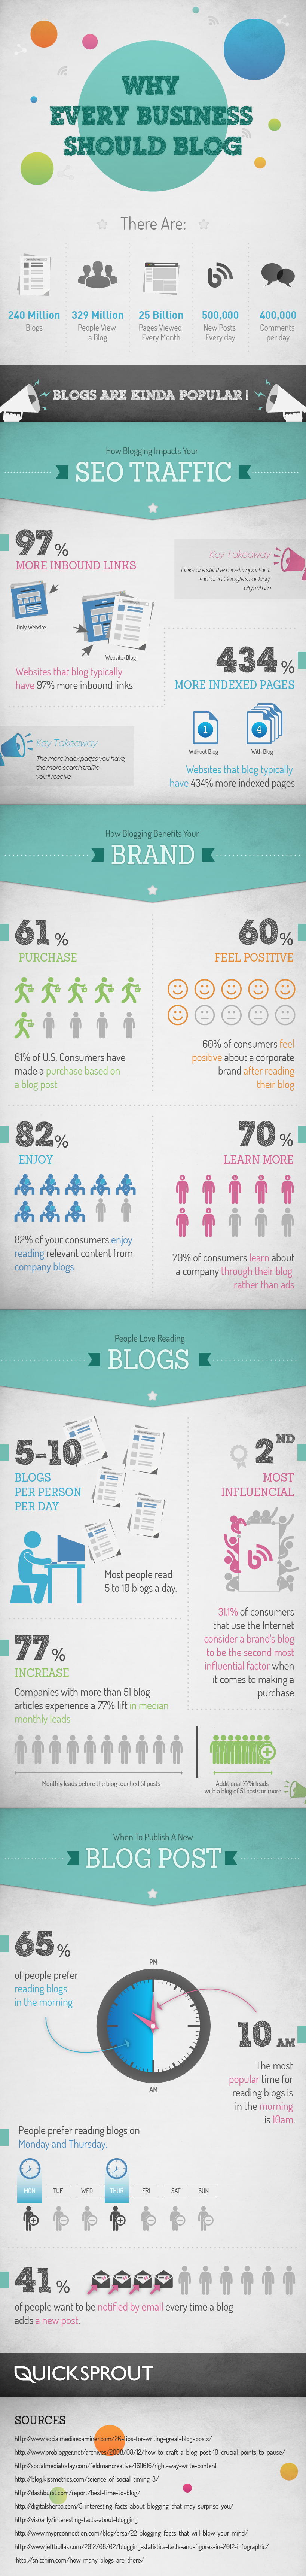 How Blogging Can Impact Businesses [INFOGRAPHIC] (scheduled via http://www.tailwindapp.com?utm_source=pinterest&utm_medium=twpin&utm_content=post274021&utm_campaign=scheduler_attribution)